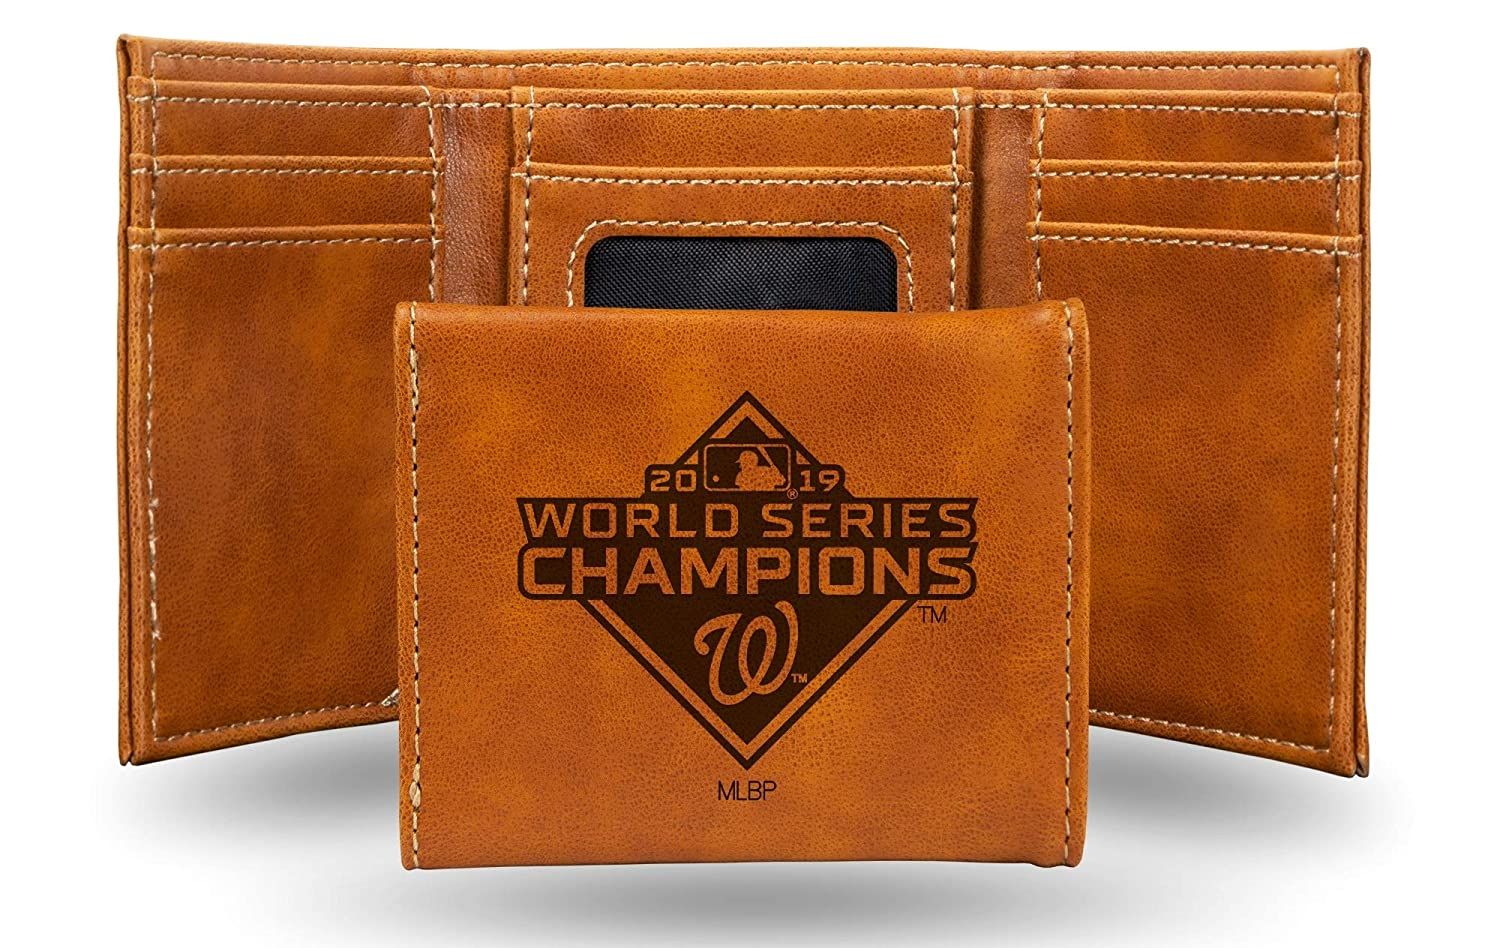 Washington Nationals 2019 Champions Premium Leather Trifold Wallet Embossed